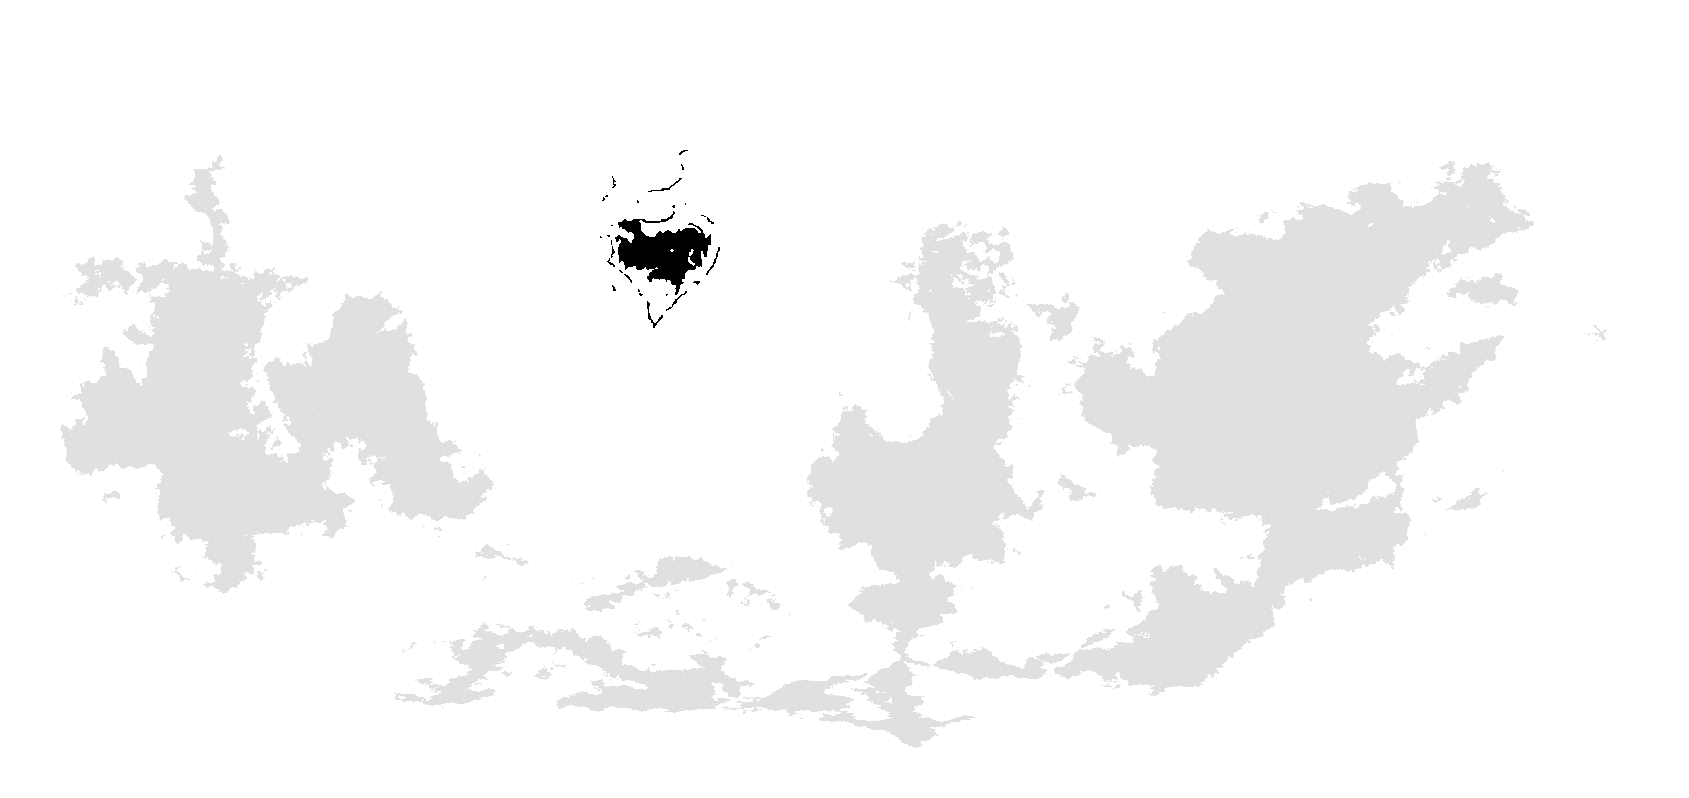 Image world map blank other projectiong constructed worlds world map blank other projectiong gumiabroncs Images